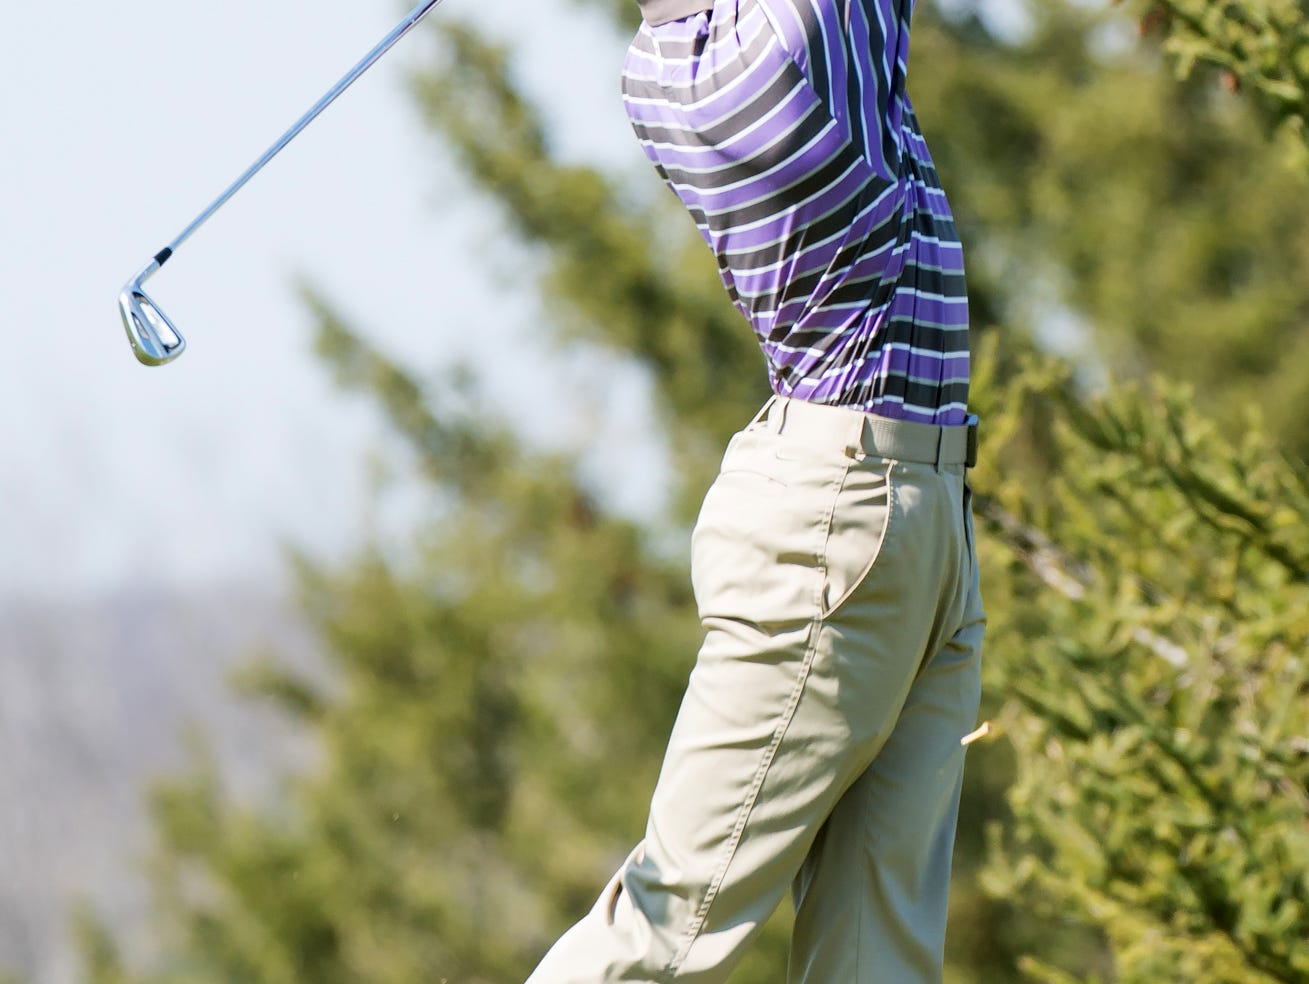 Lakeview's James Staab tees off on the 11th hole Thursday afternoon at Cedar Creek golf course.